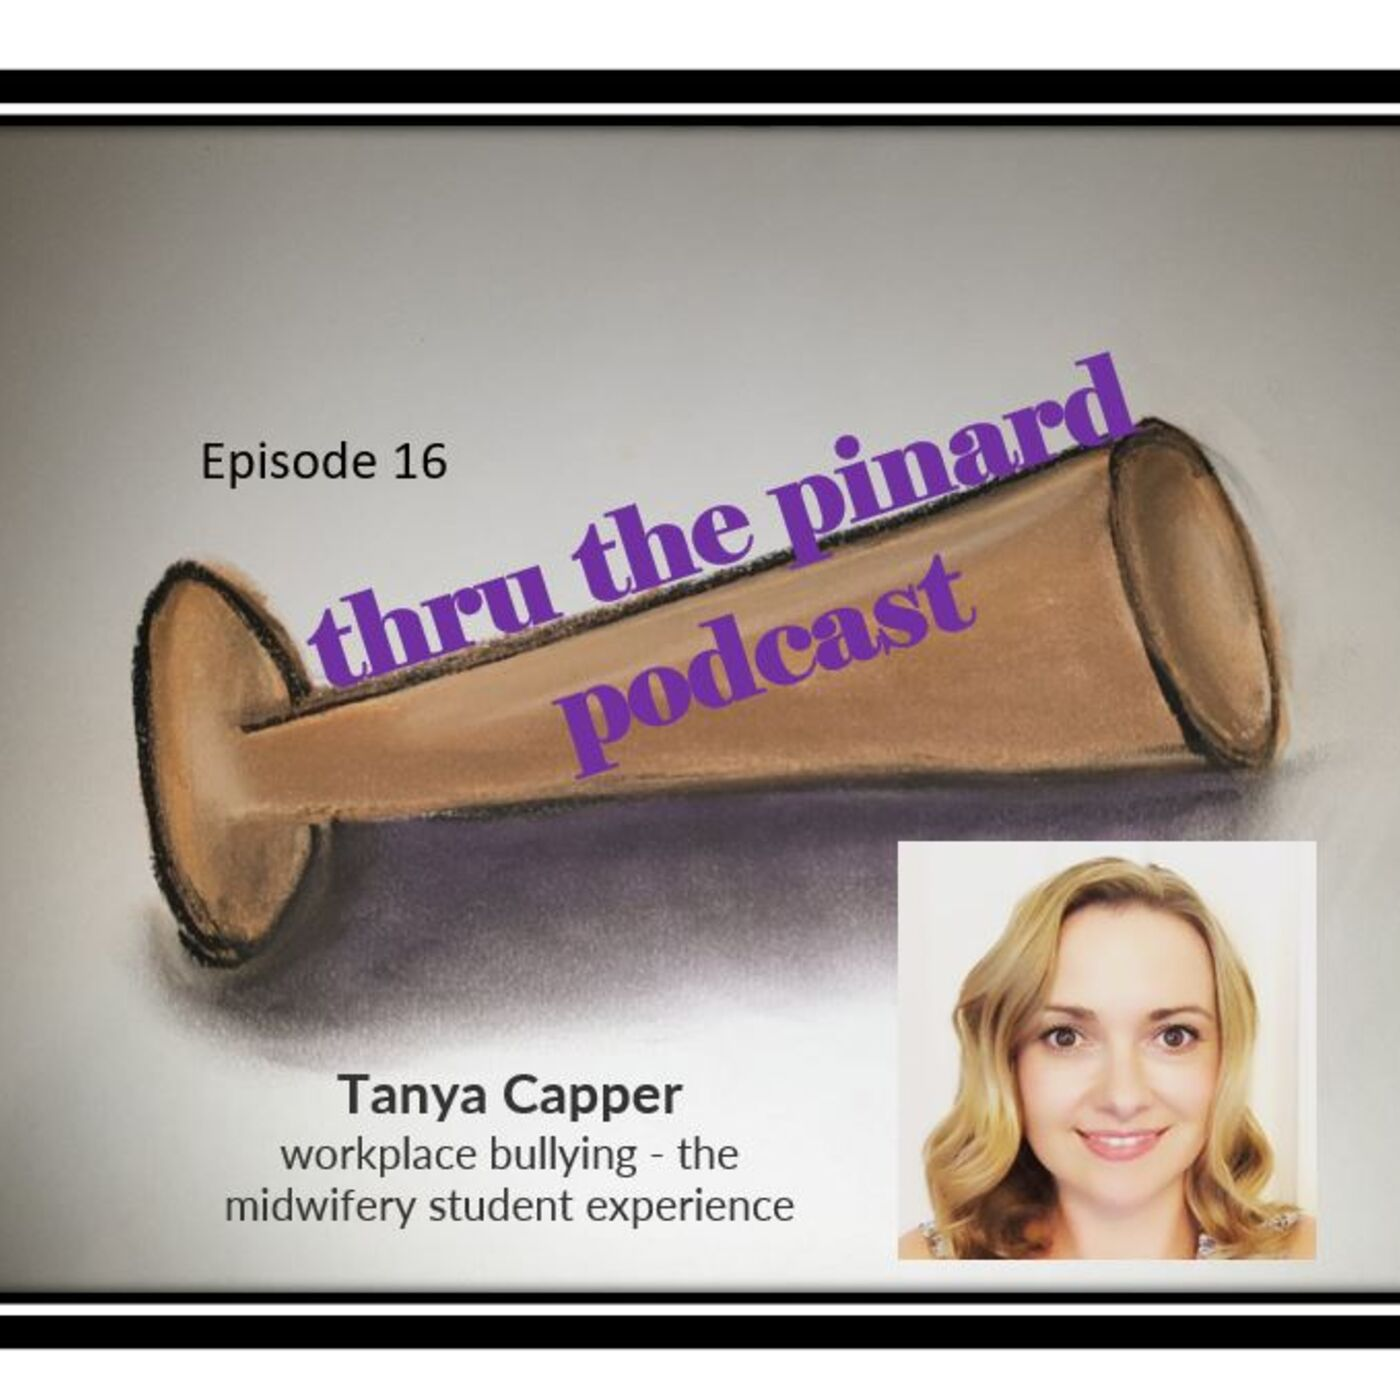 Ep 16 Tanya Capper & workplace bullying - the midwifery student experience